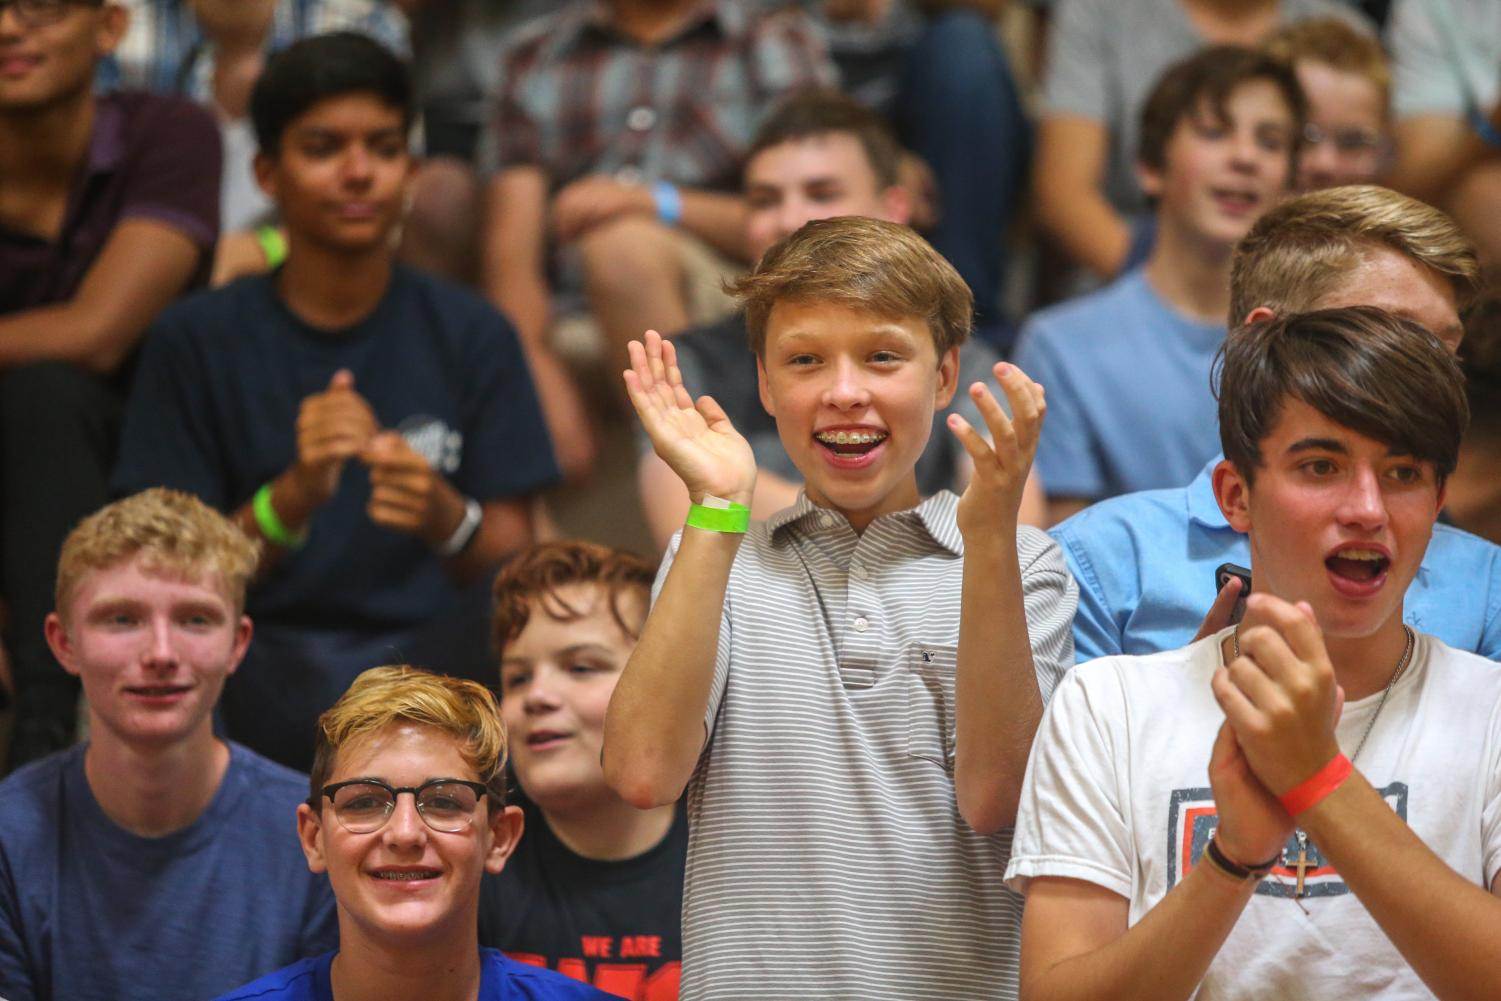 Freshmen Kemper Davis cheers on classmates participating in freshmen activities.